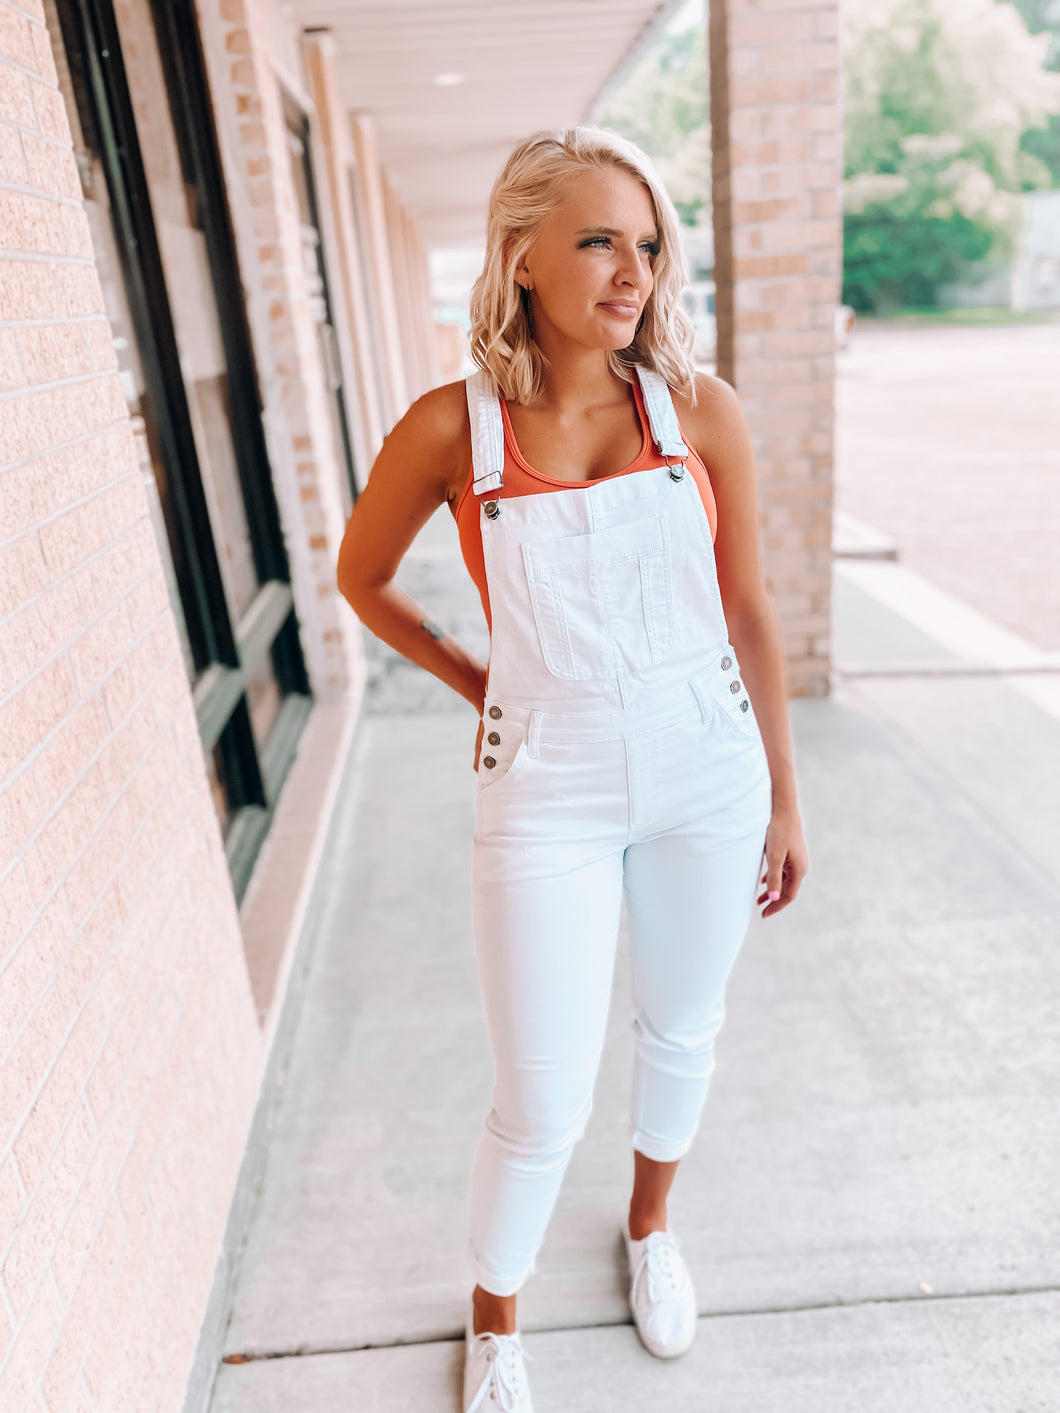 Teenage Dreamin Overalls-Kan Can-JUL2020, kancan, KCU2AA9737240, overalls, white overalls-The Twisted Chandelier